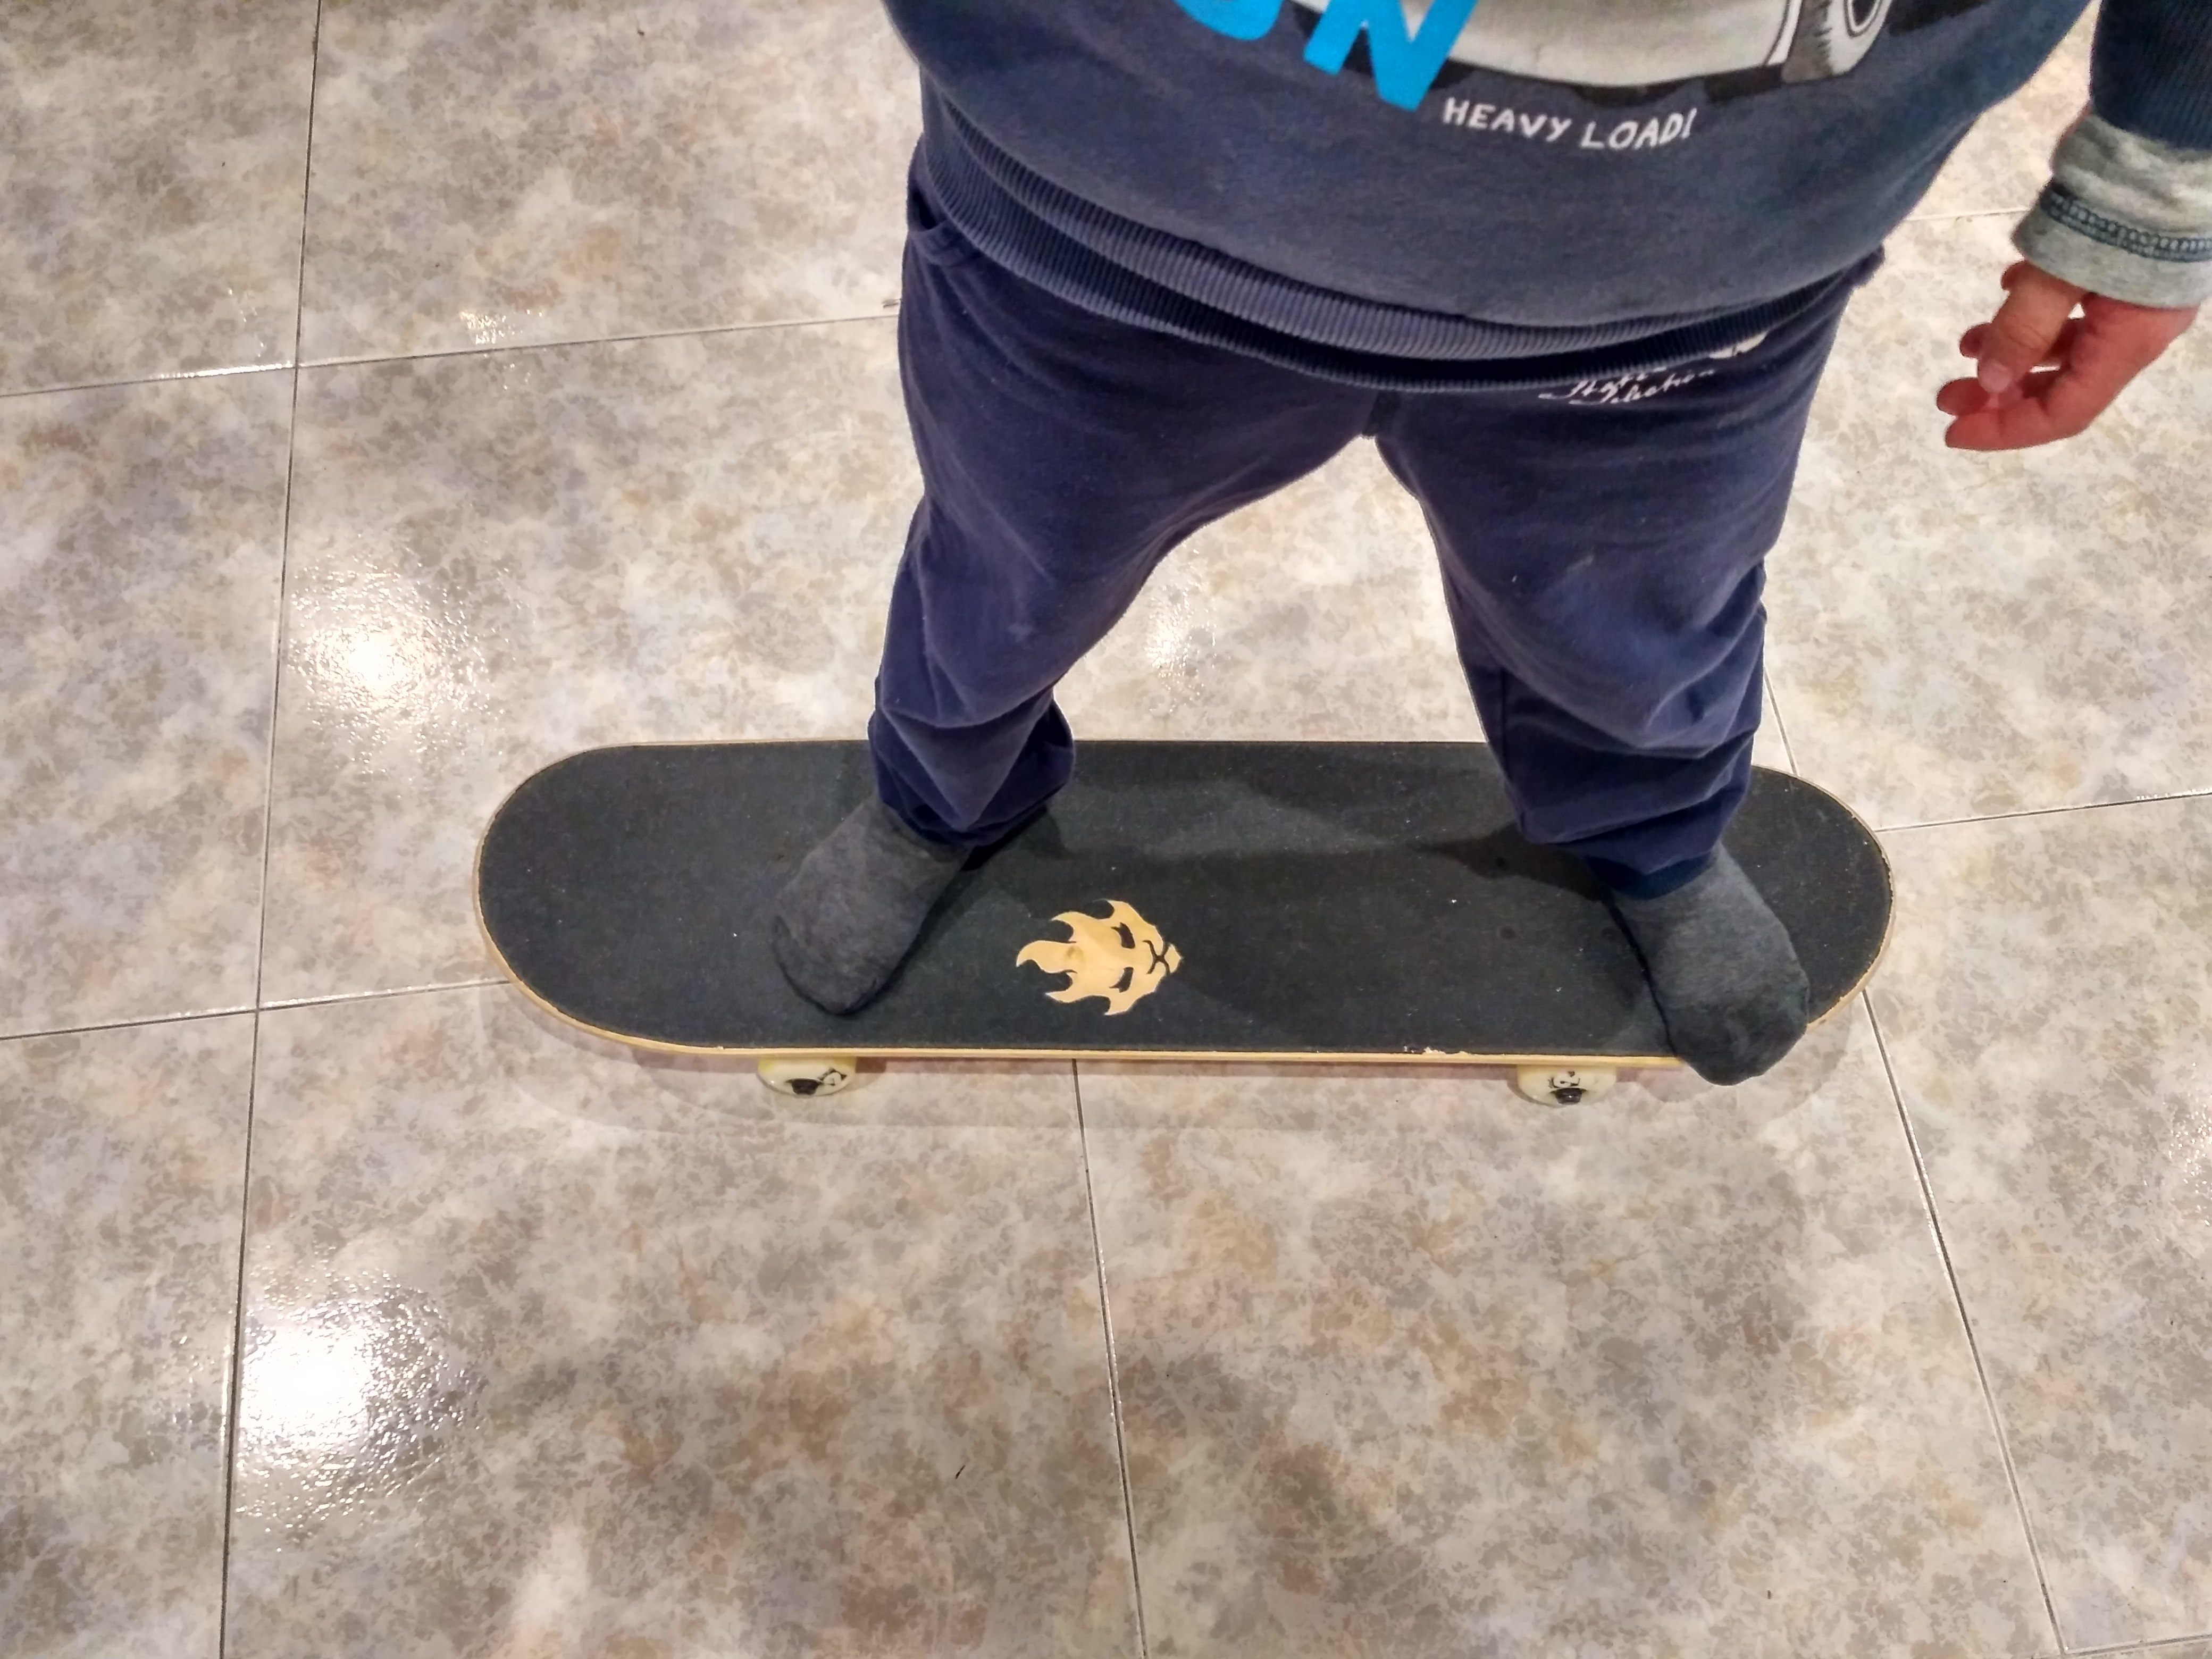 Picture of DIY Custom Grip Tape Already on a Skateboard!